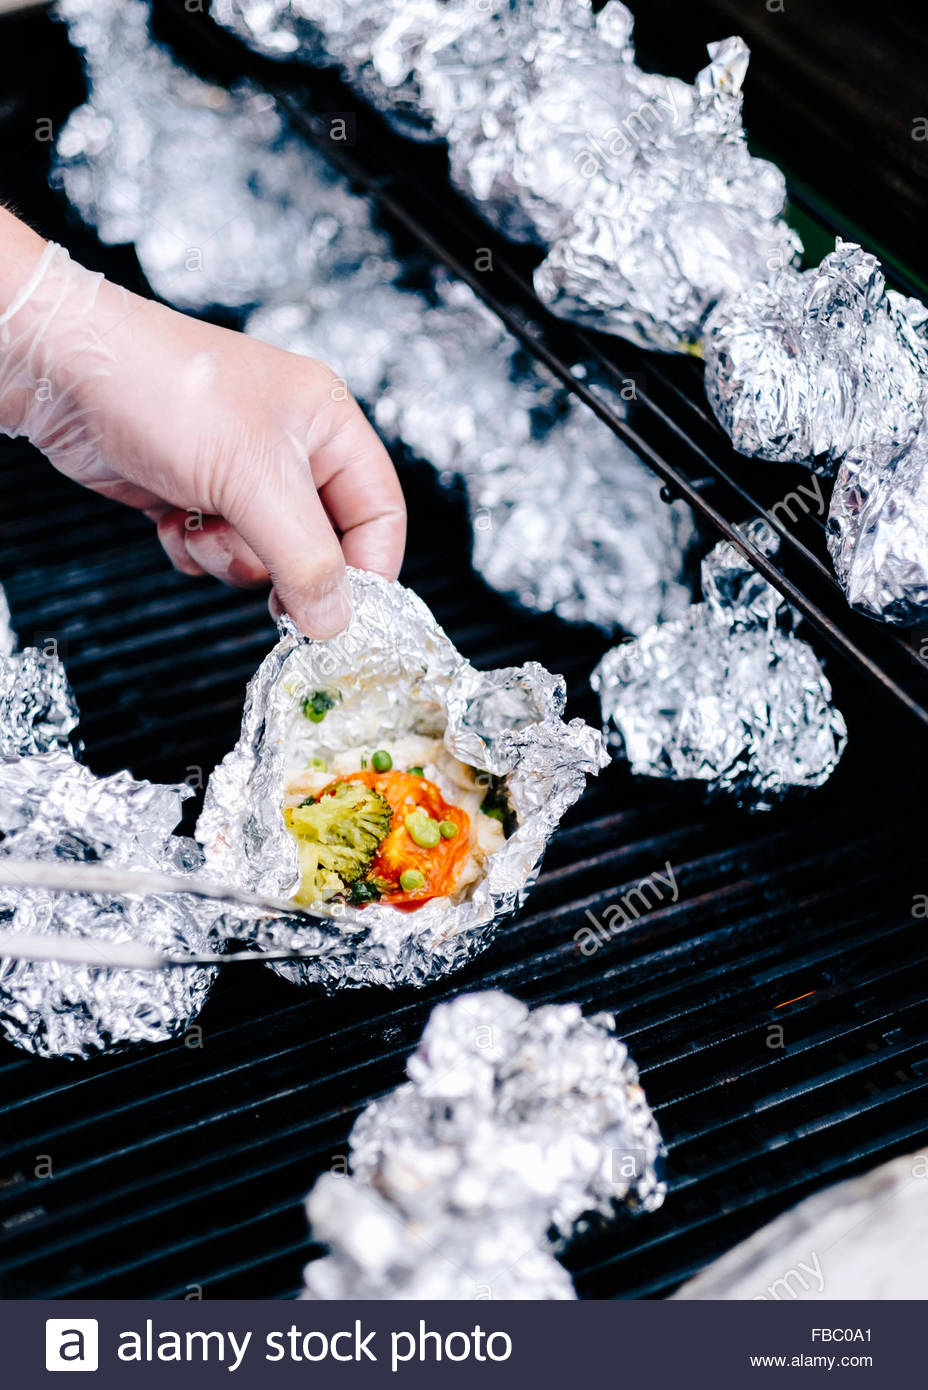 Grill with of vegetables in foil - Stock Image